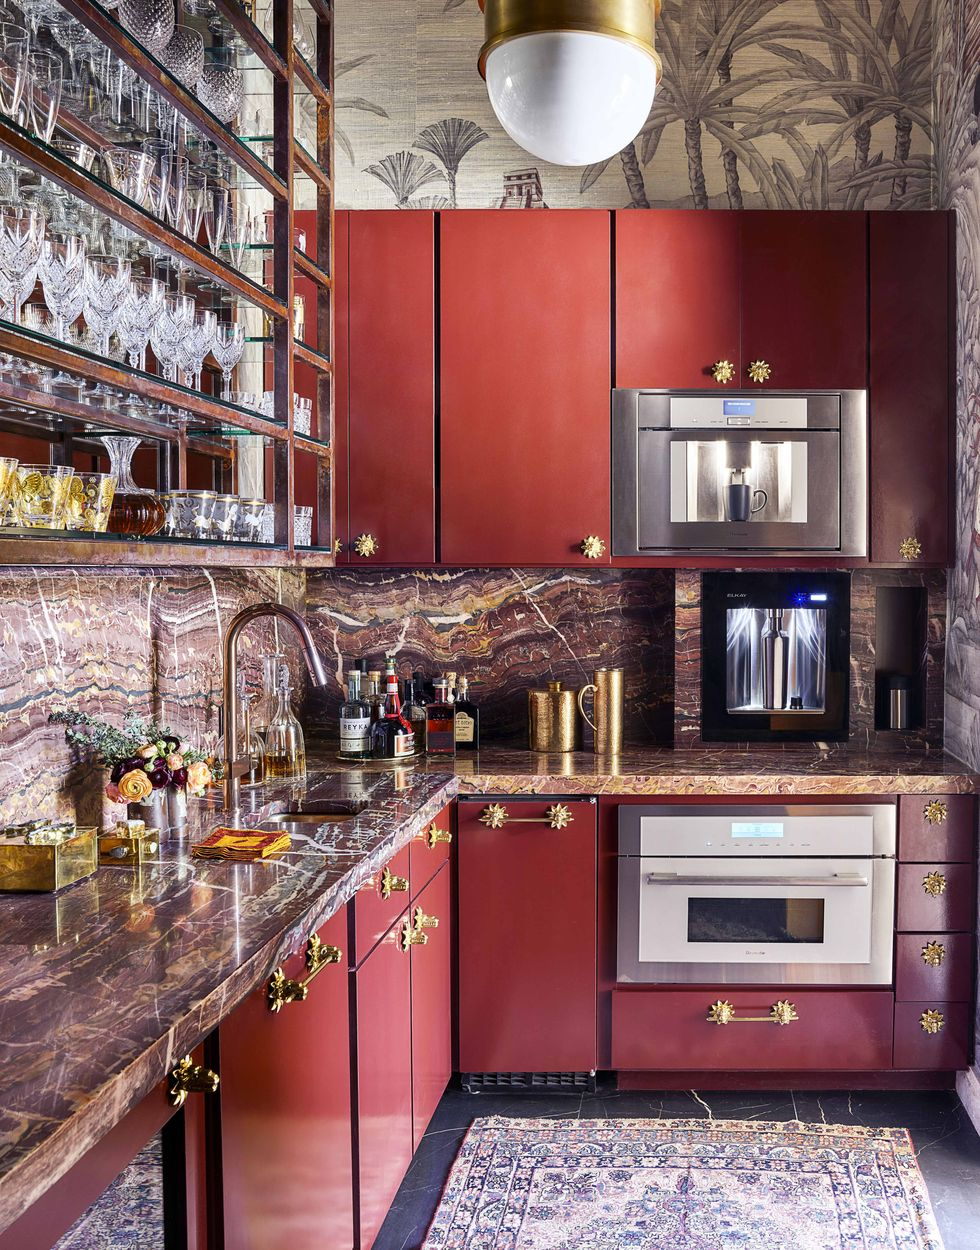 There Are 4 Insanely Cool Kitchens And A Pink Pantry Full Of Fine China In This Dallas Home House Beautiful Kitchens Beautiful Kitchens Kitchen Design Small